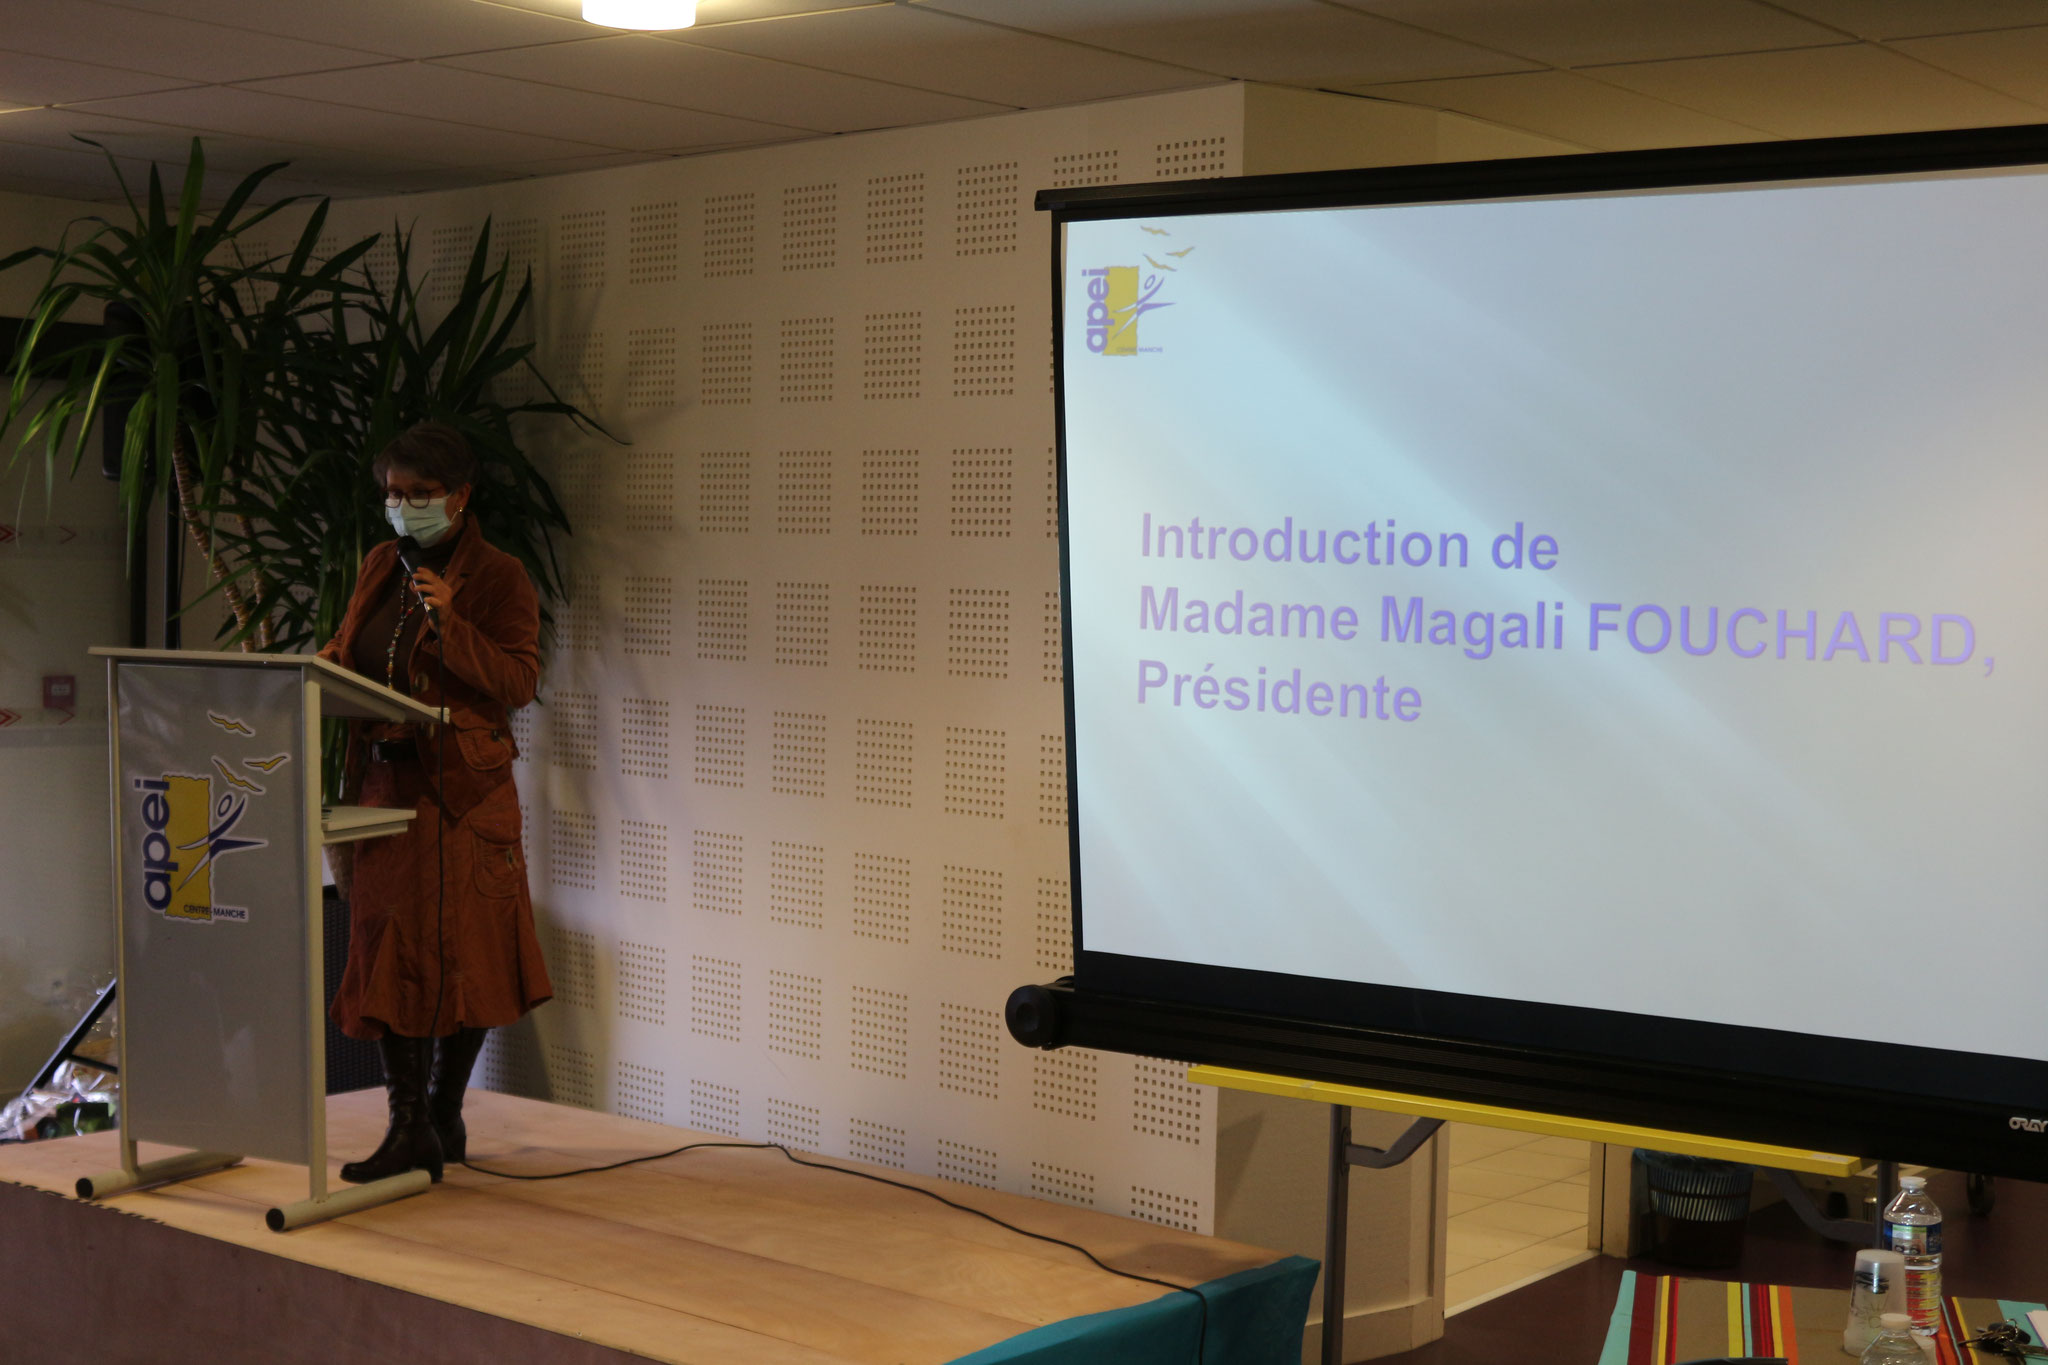 Introduction de Magali FOUCHARD, Présidente